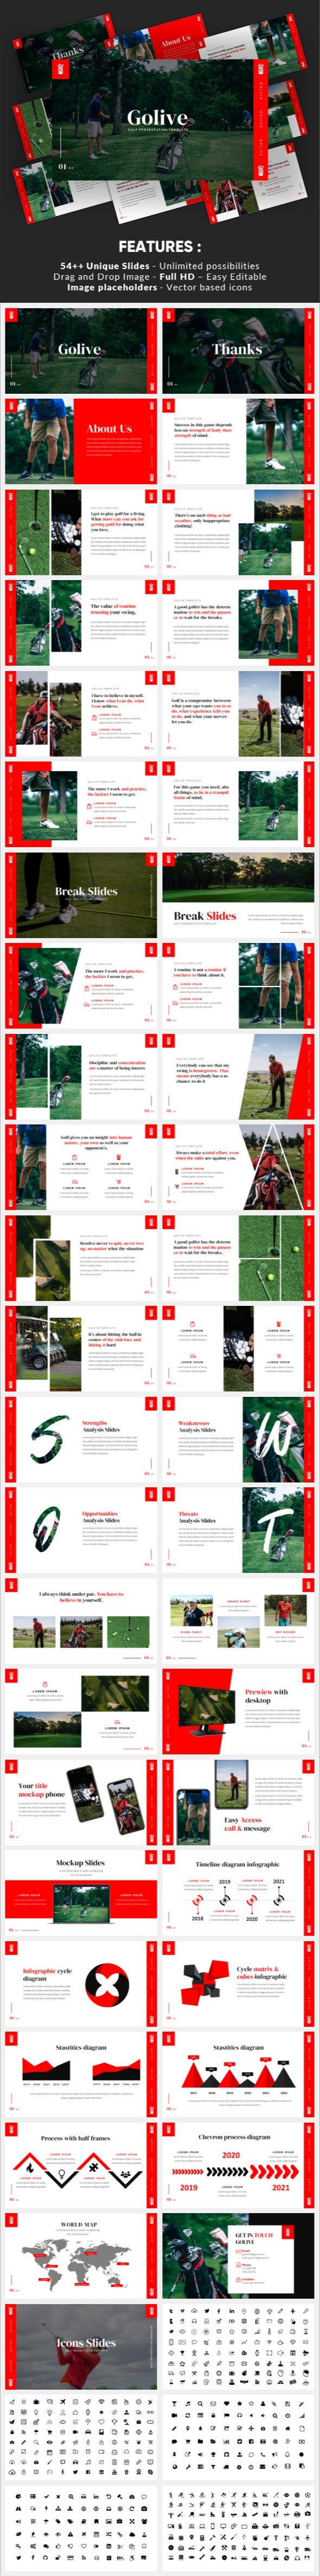 Golive - Golf Clubs Google Slides Template - Google Slides Presentation Templates